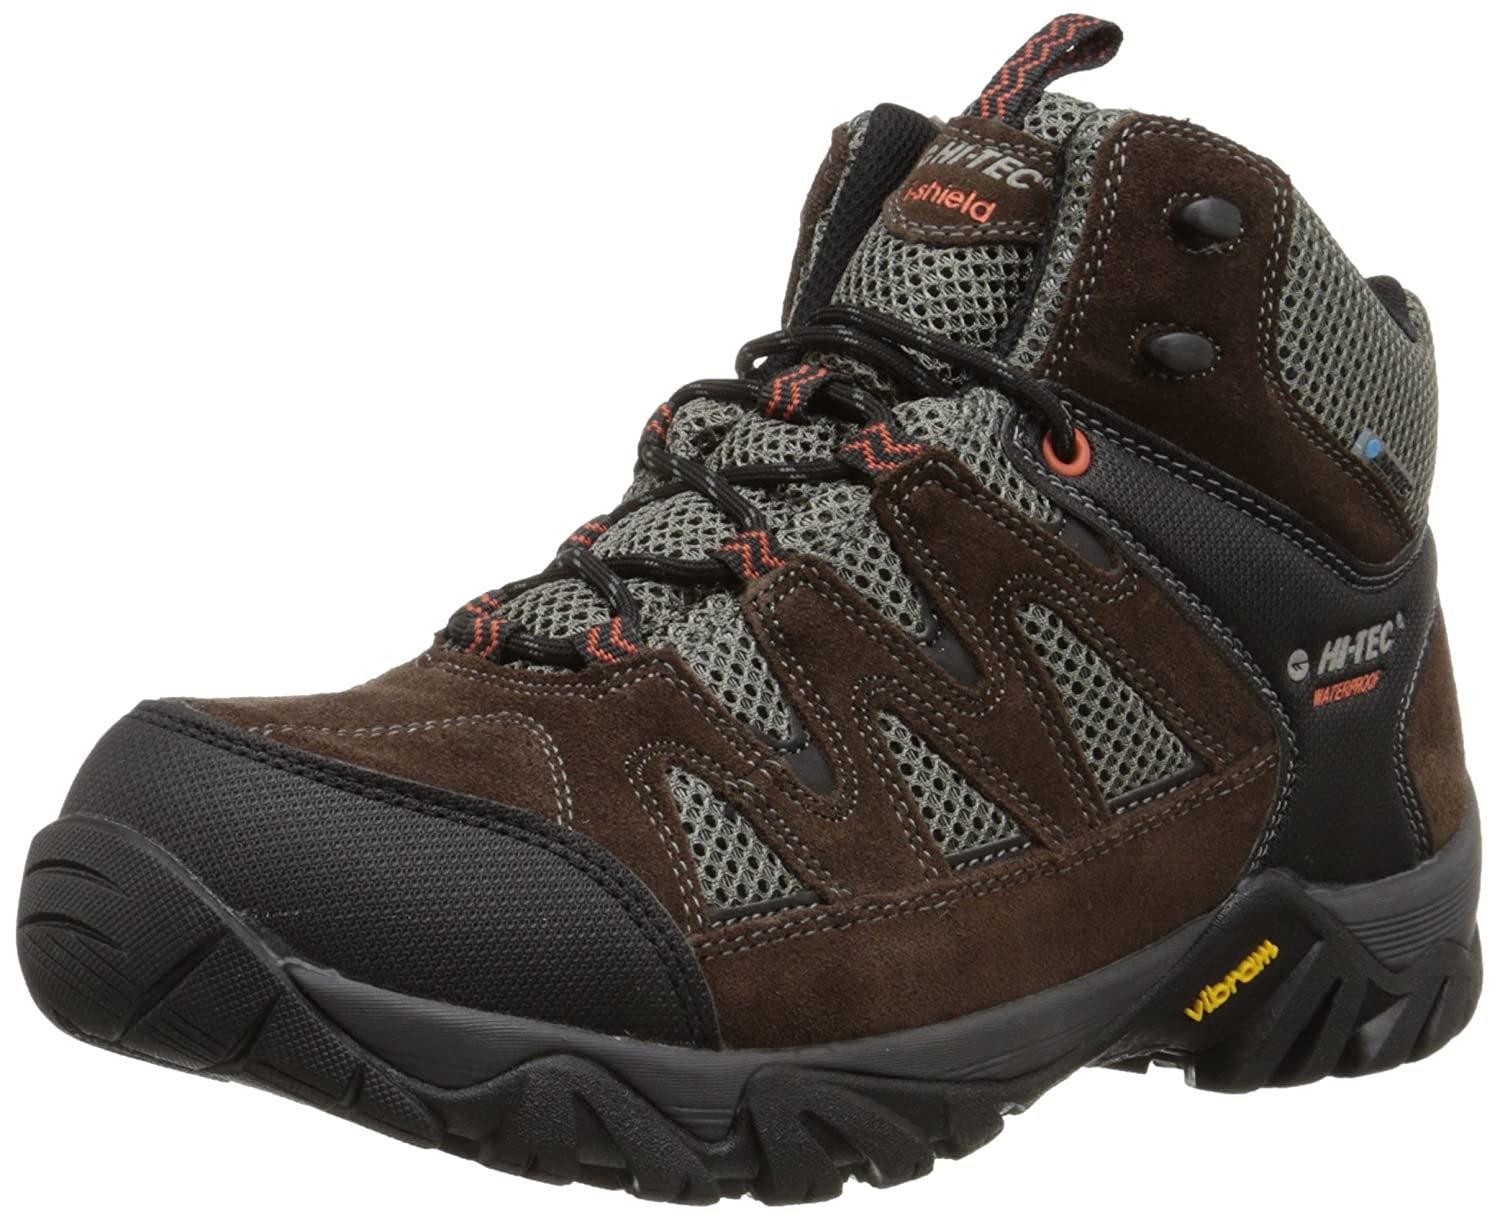 Offer Special Of HiTec Sonorous I Waterproof Mens Low Rise Hiking Shoes